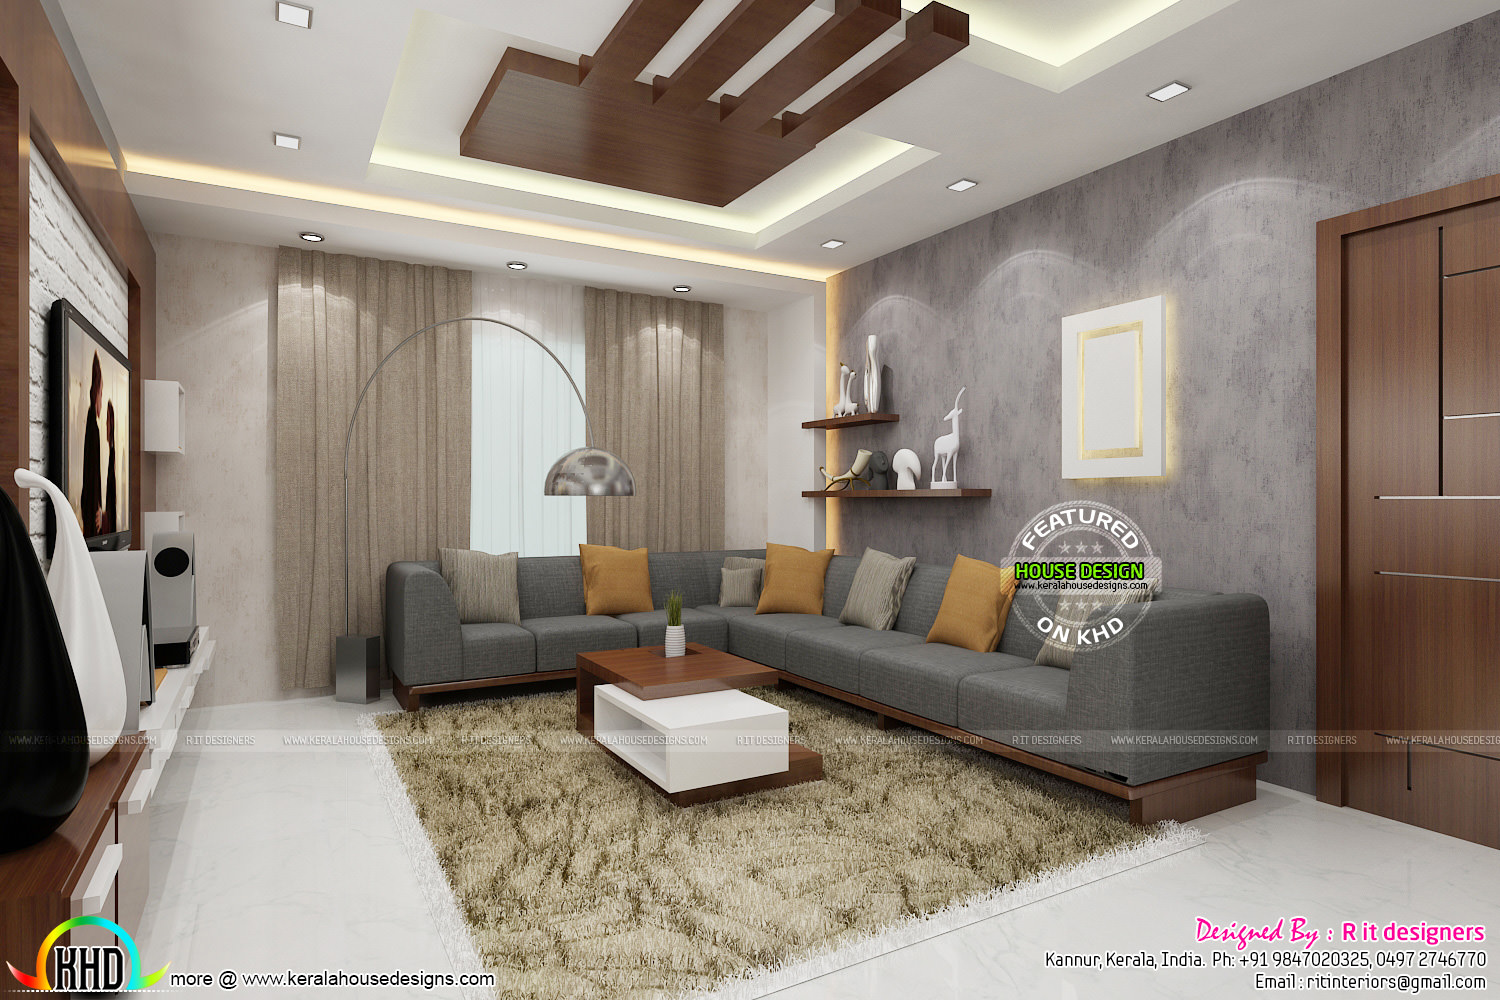 Posh living room interior kerala home design and floor plans for Kerala house living room interior design